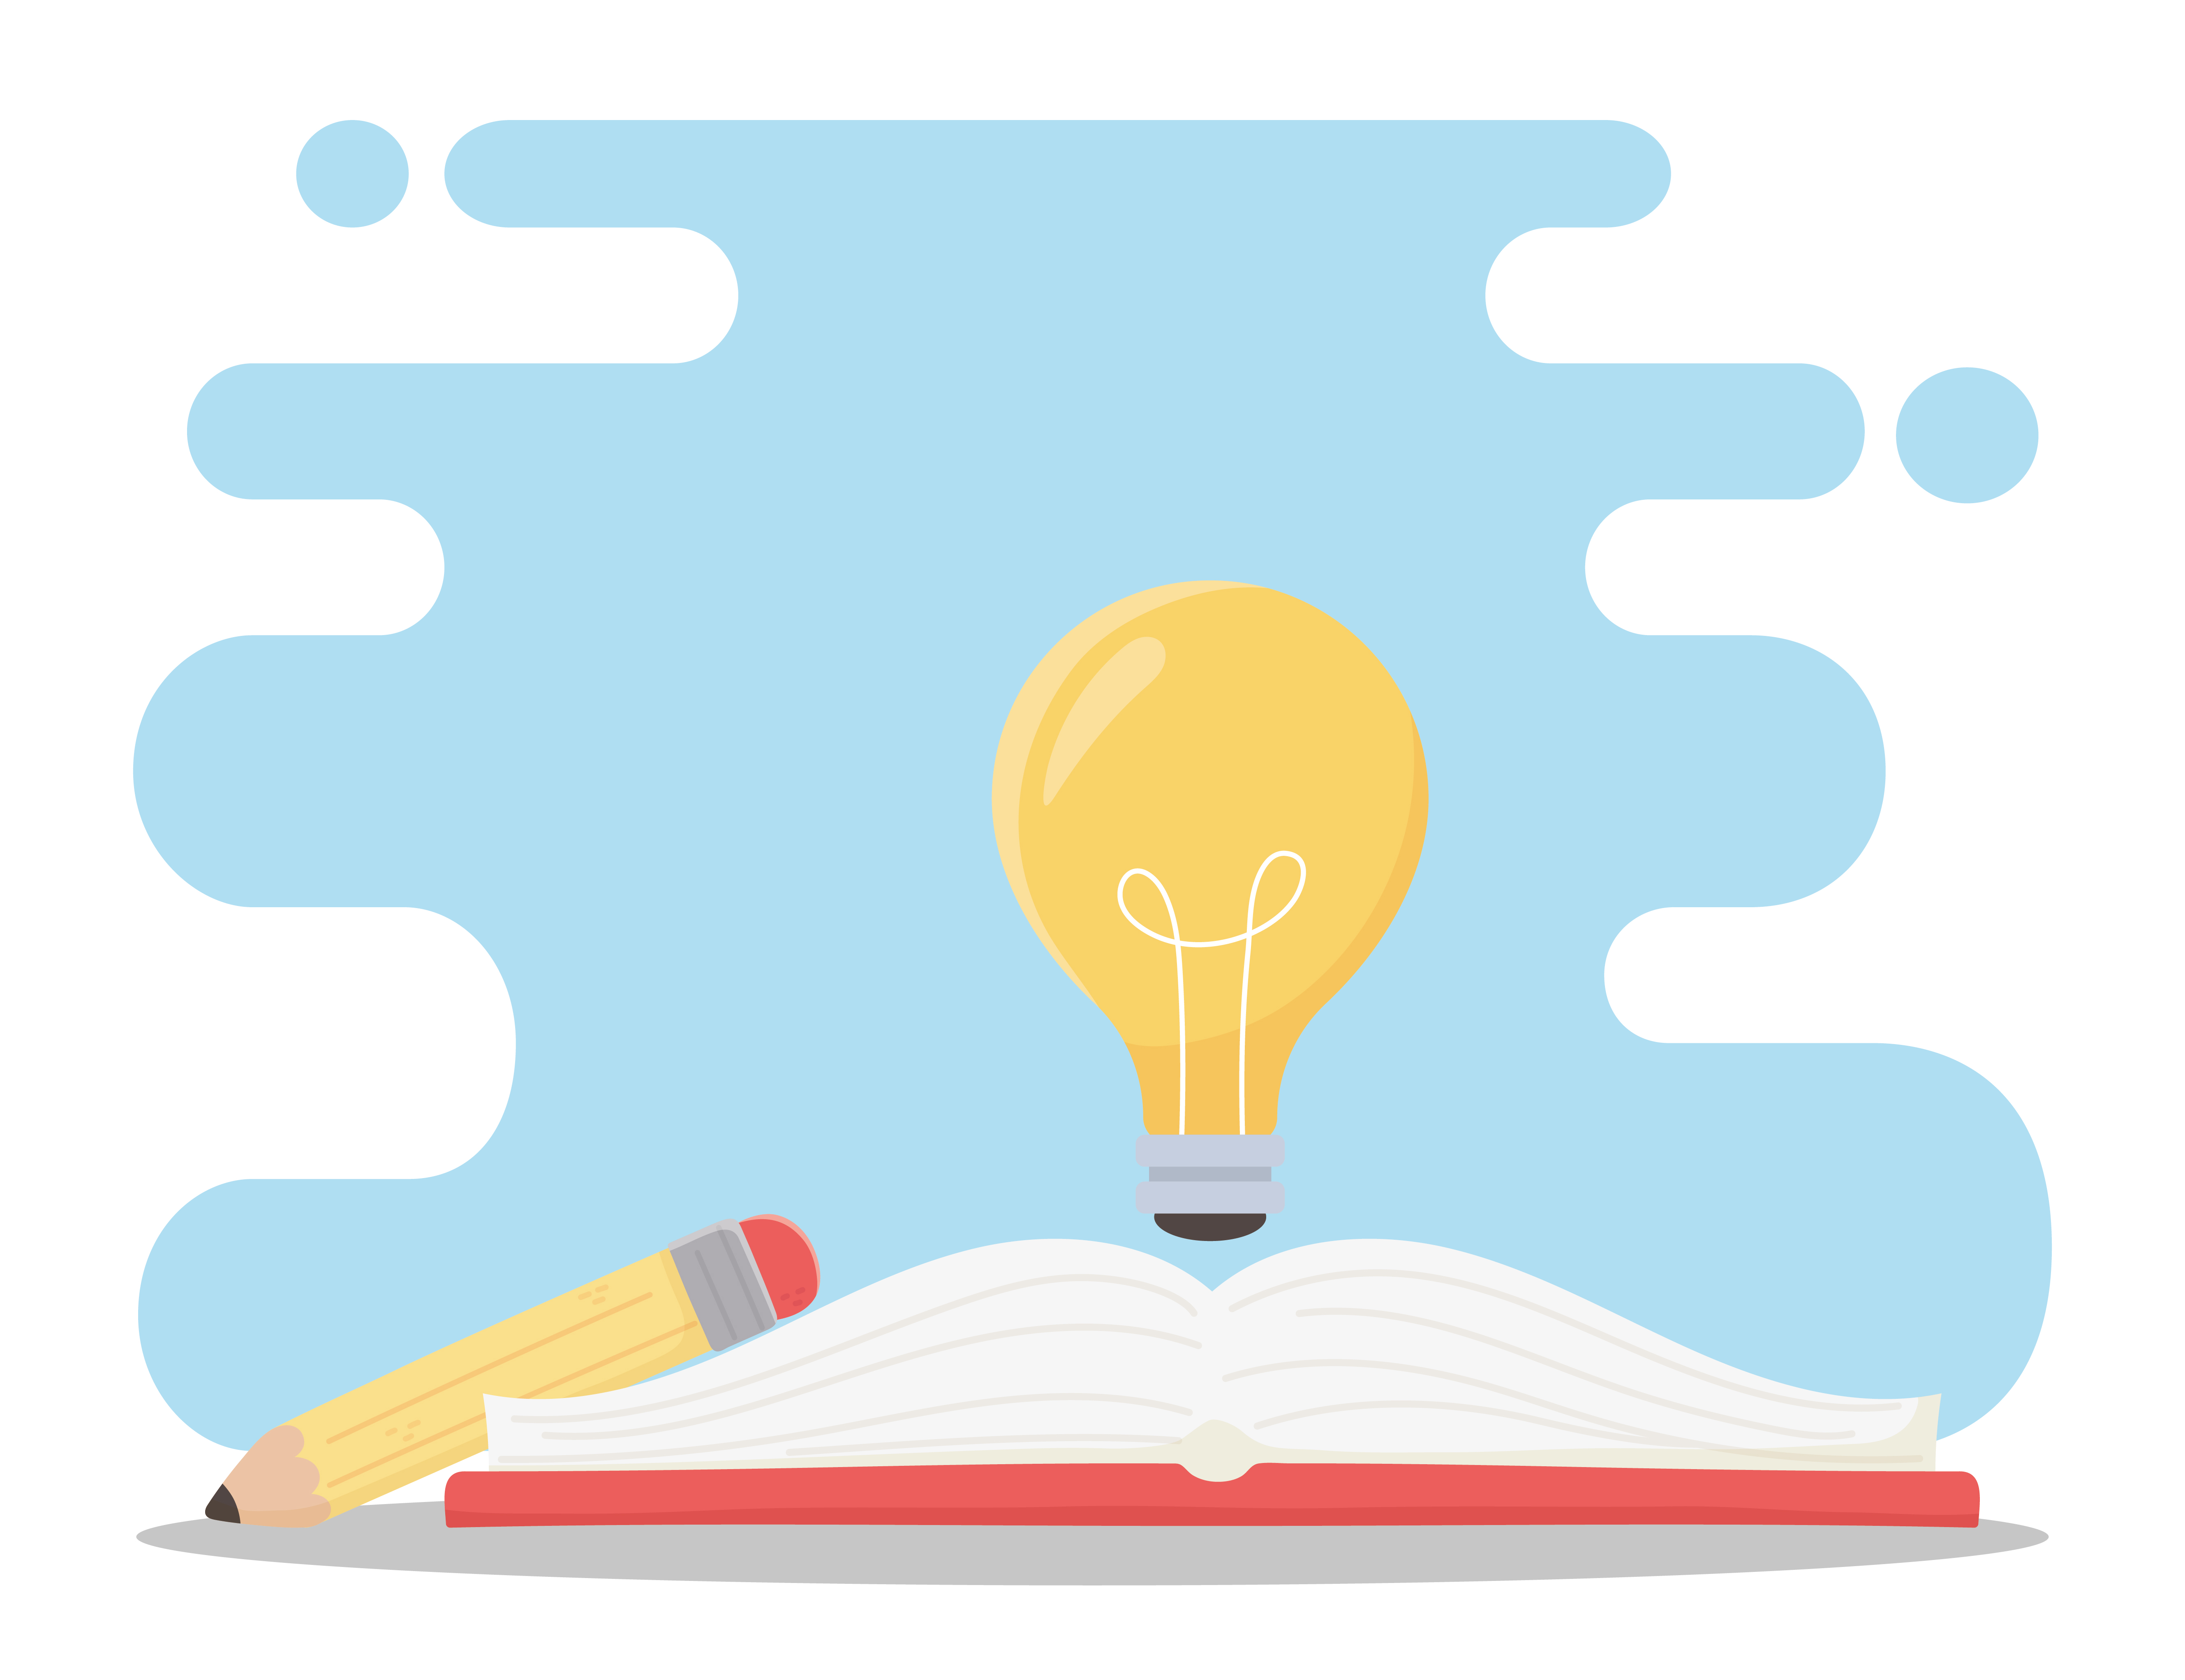 education online light bulb on book and pencil 1830057 vector art at vecteezy